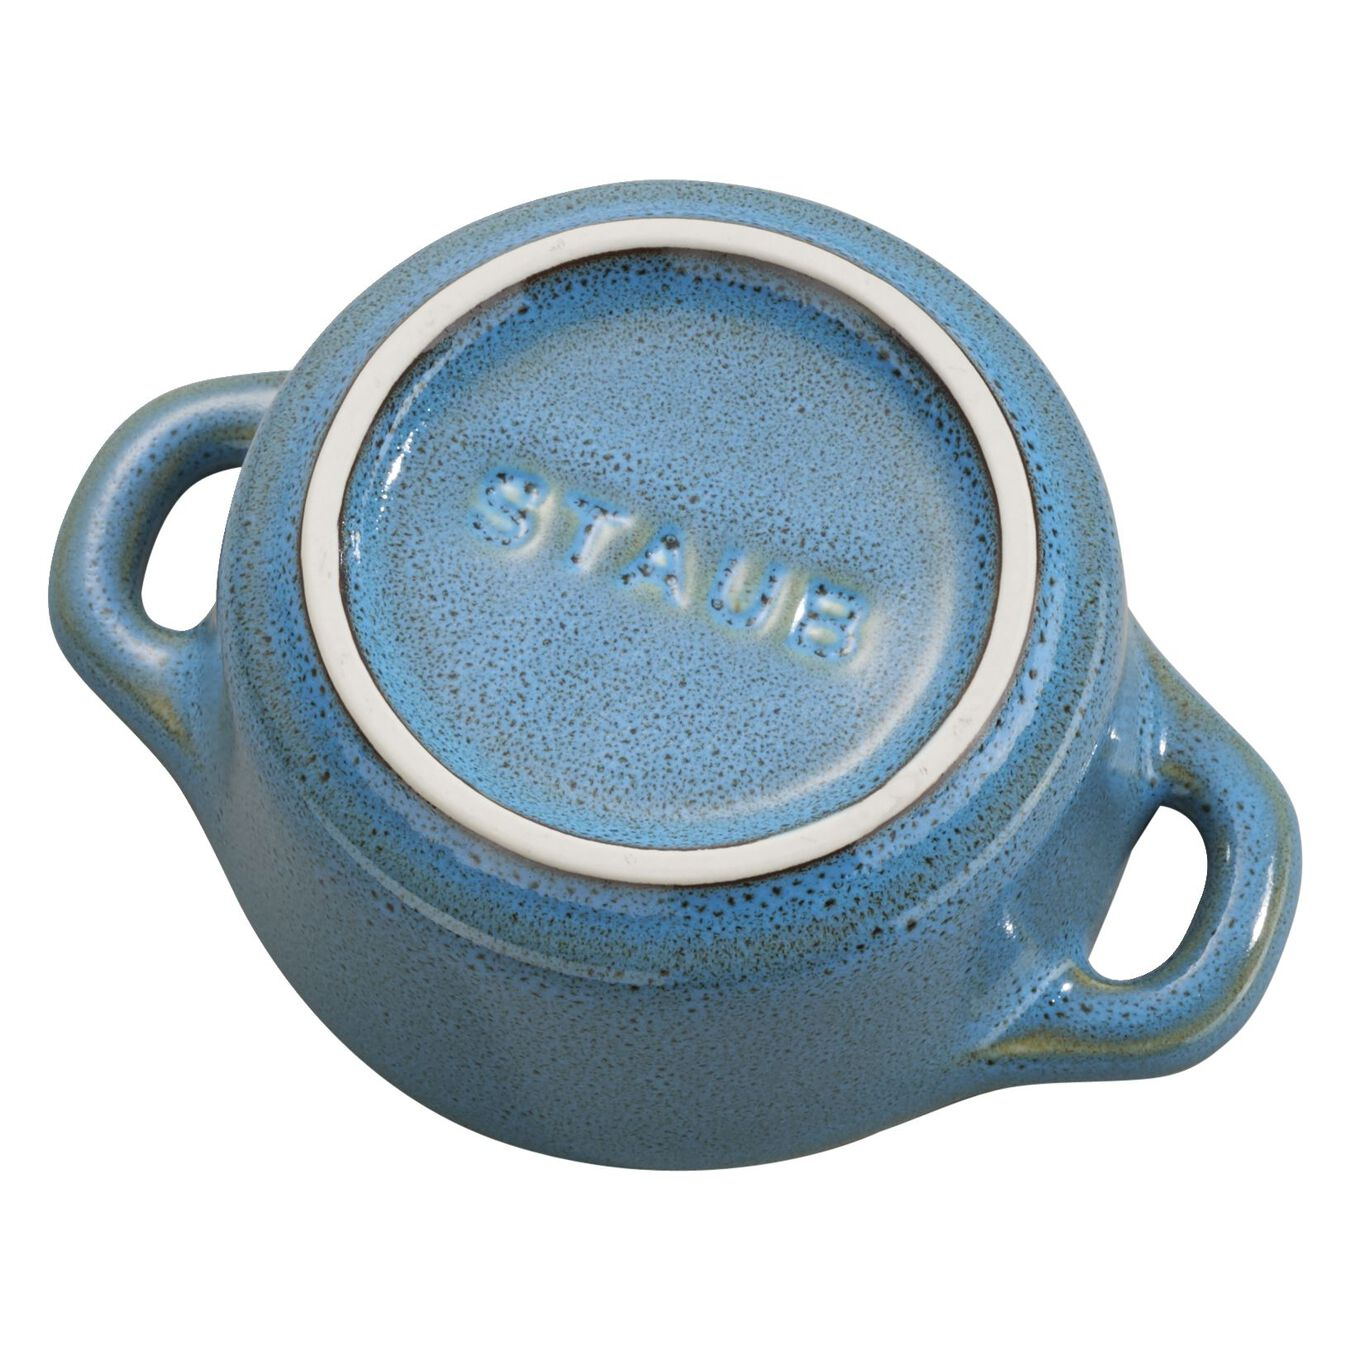 3-pc Mini Round Cocotte Set - Rustic Turquoise,,large 6